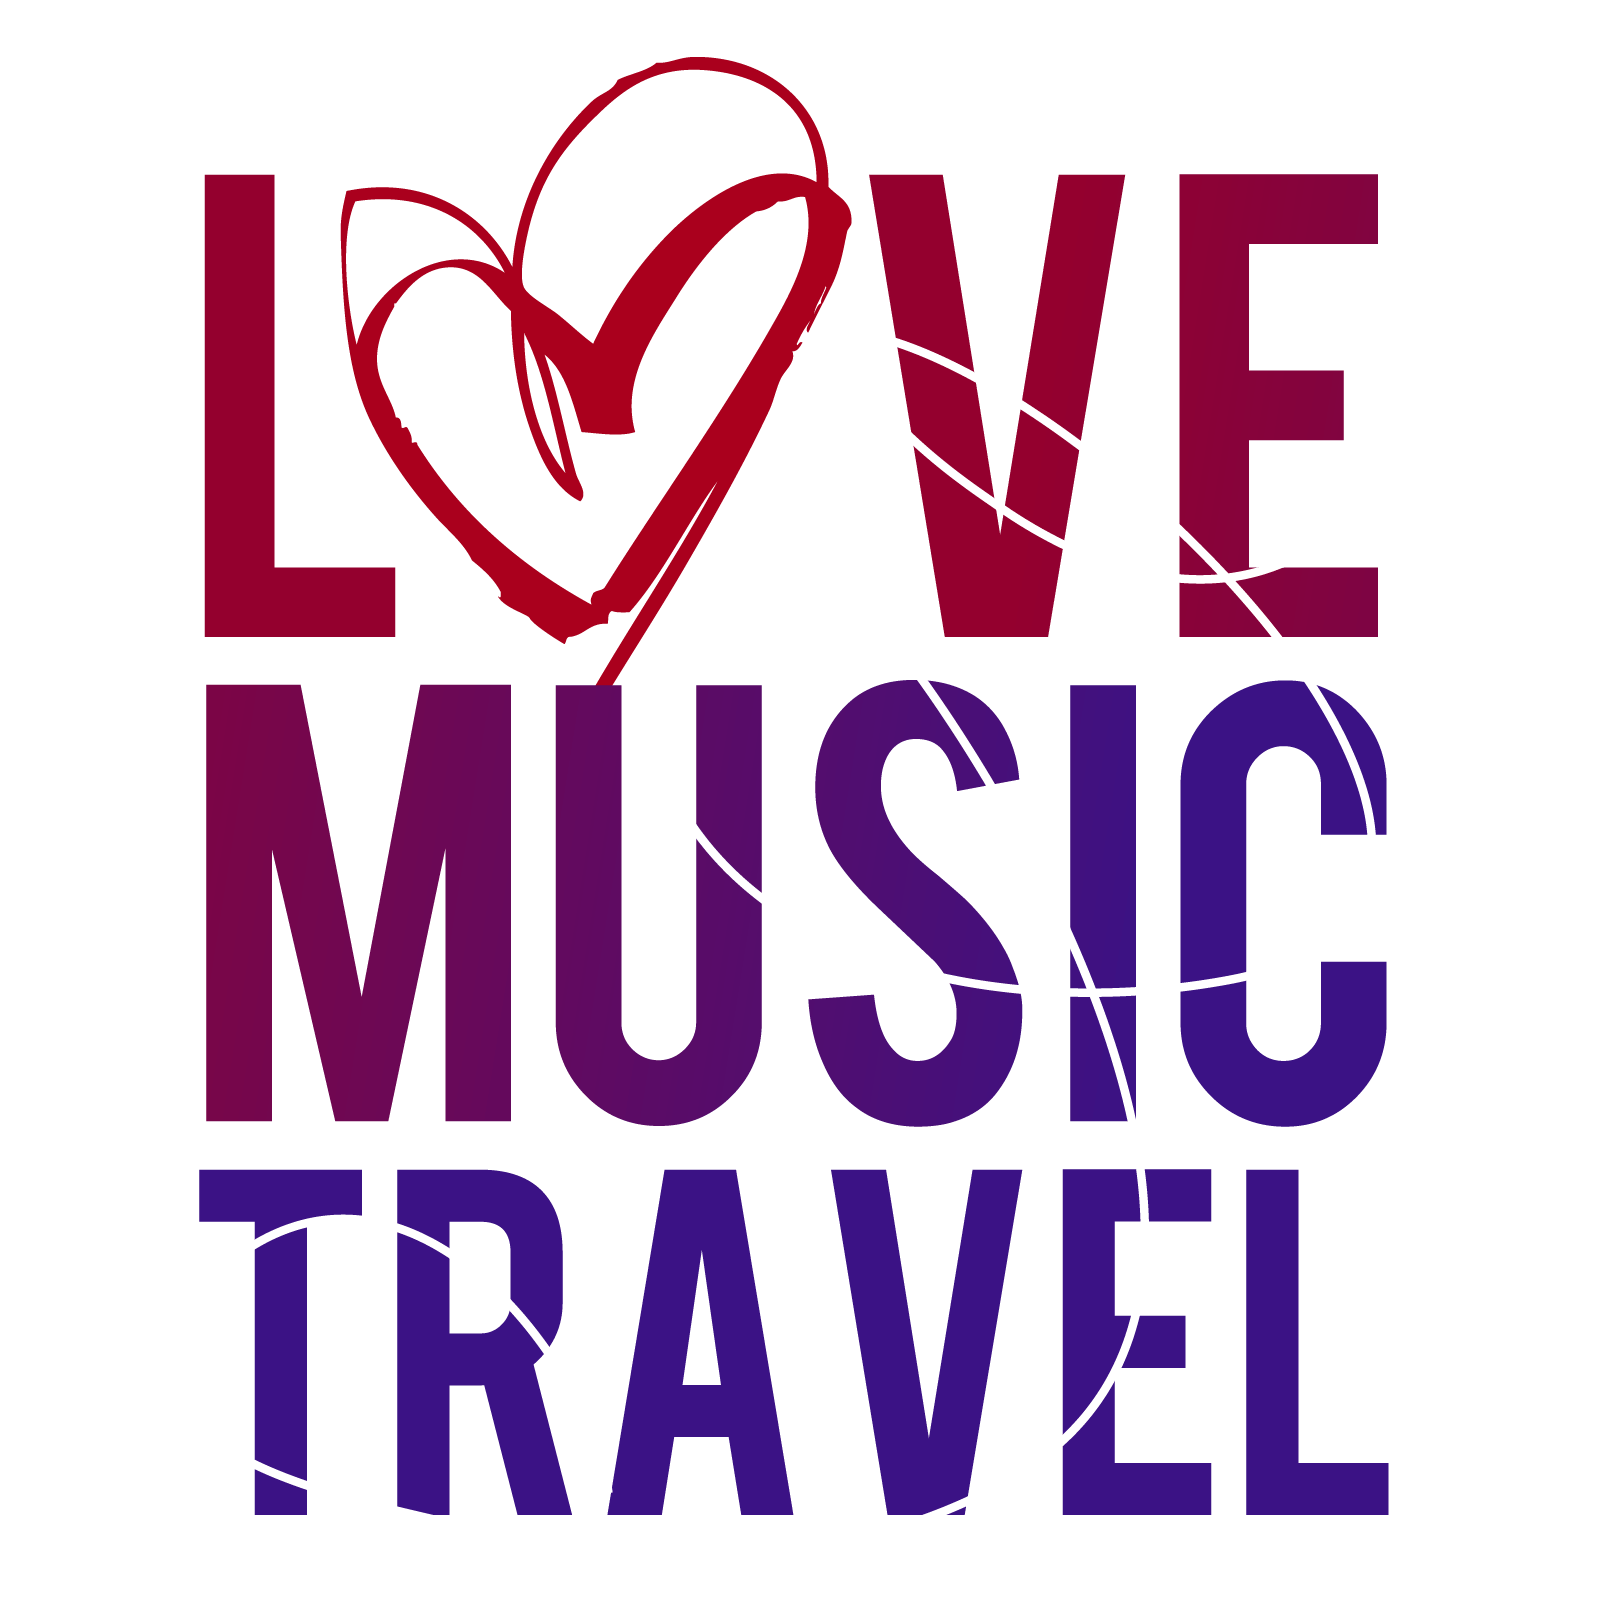 Love Music Travel